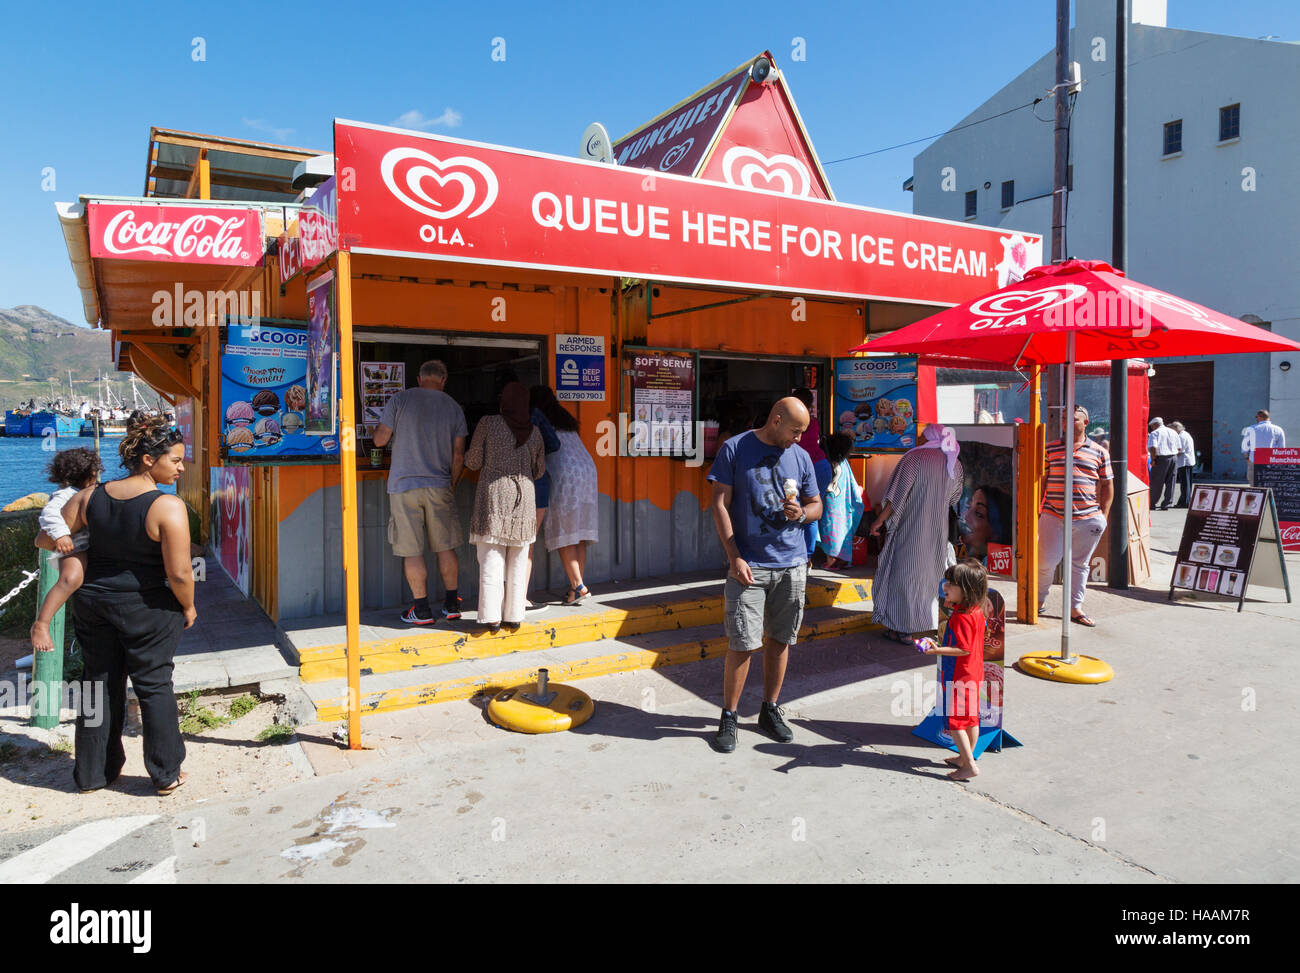 People buying ice cream at an ice cream shop, Hout Bay, Cape Peninsula, Cape Town, South Africa - Stock Image